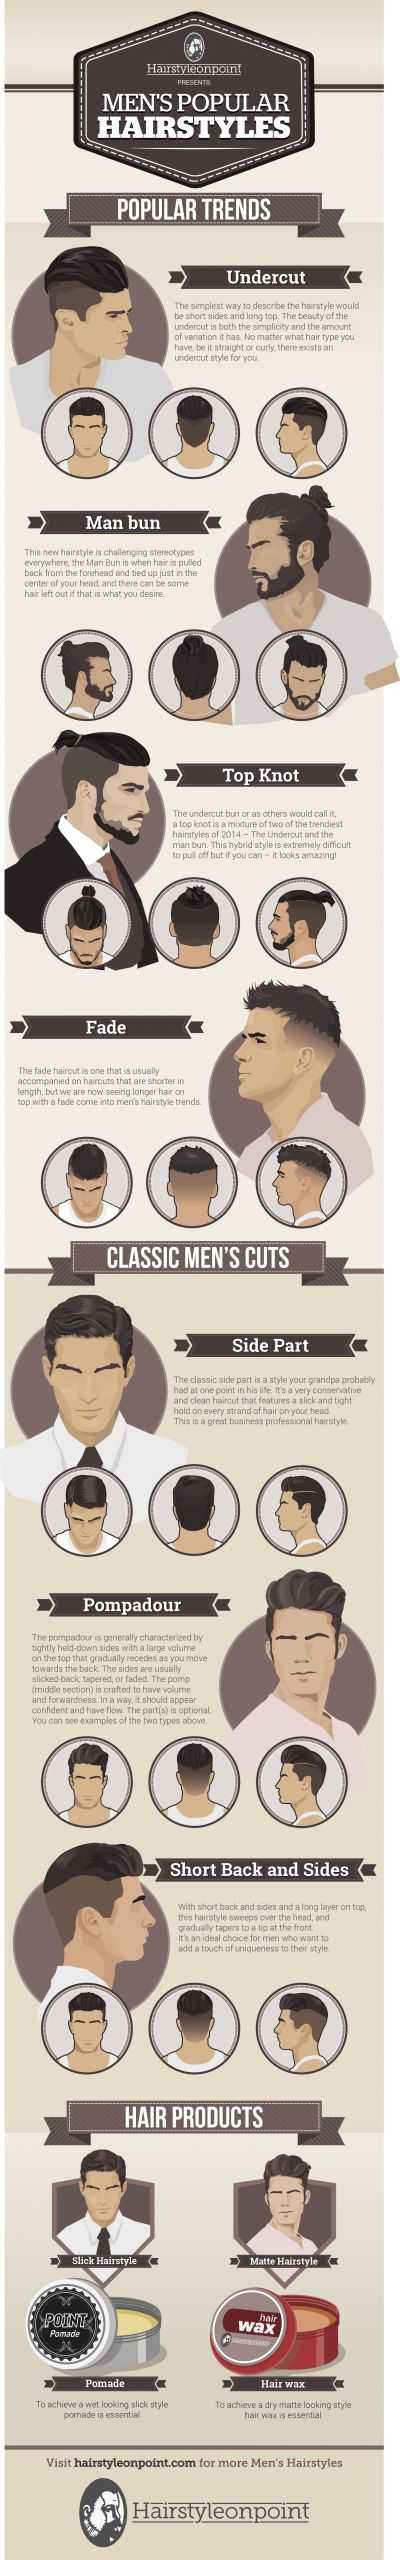 best images about new hair styles on pinterest classic mens